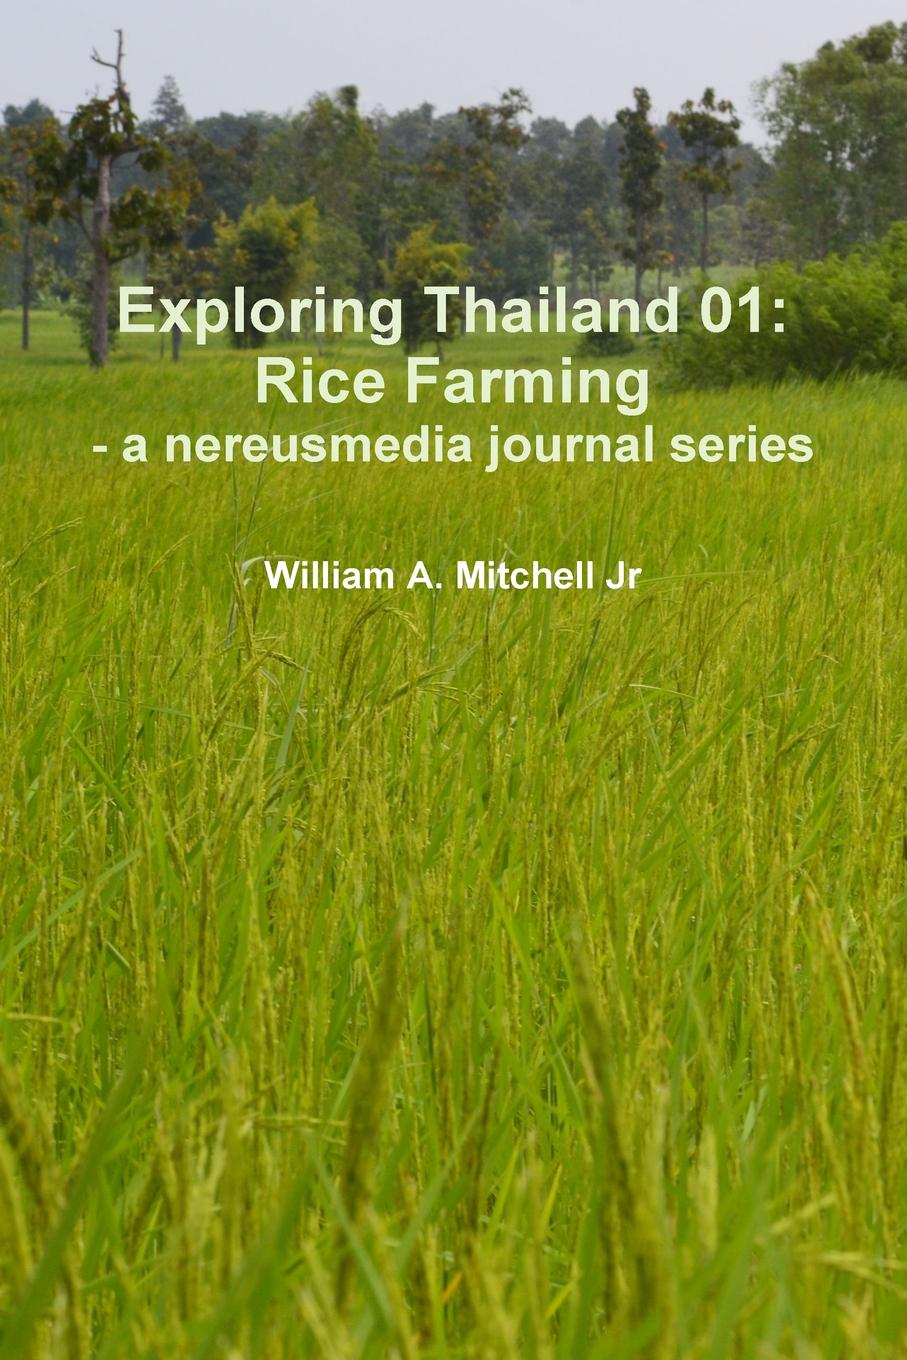 William A. Mitchell Jr Exploring Thailand 01. Rice Farming - a nereusmedia journal series fuel diesel injector 0445 110 290 for bosch 0445110290 common rail injector common rail injection for diesel engine